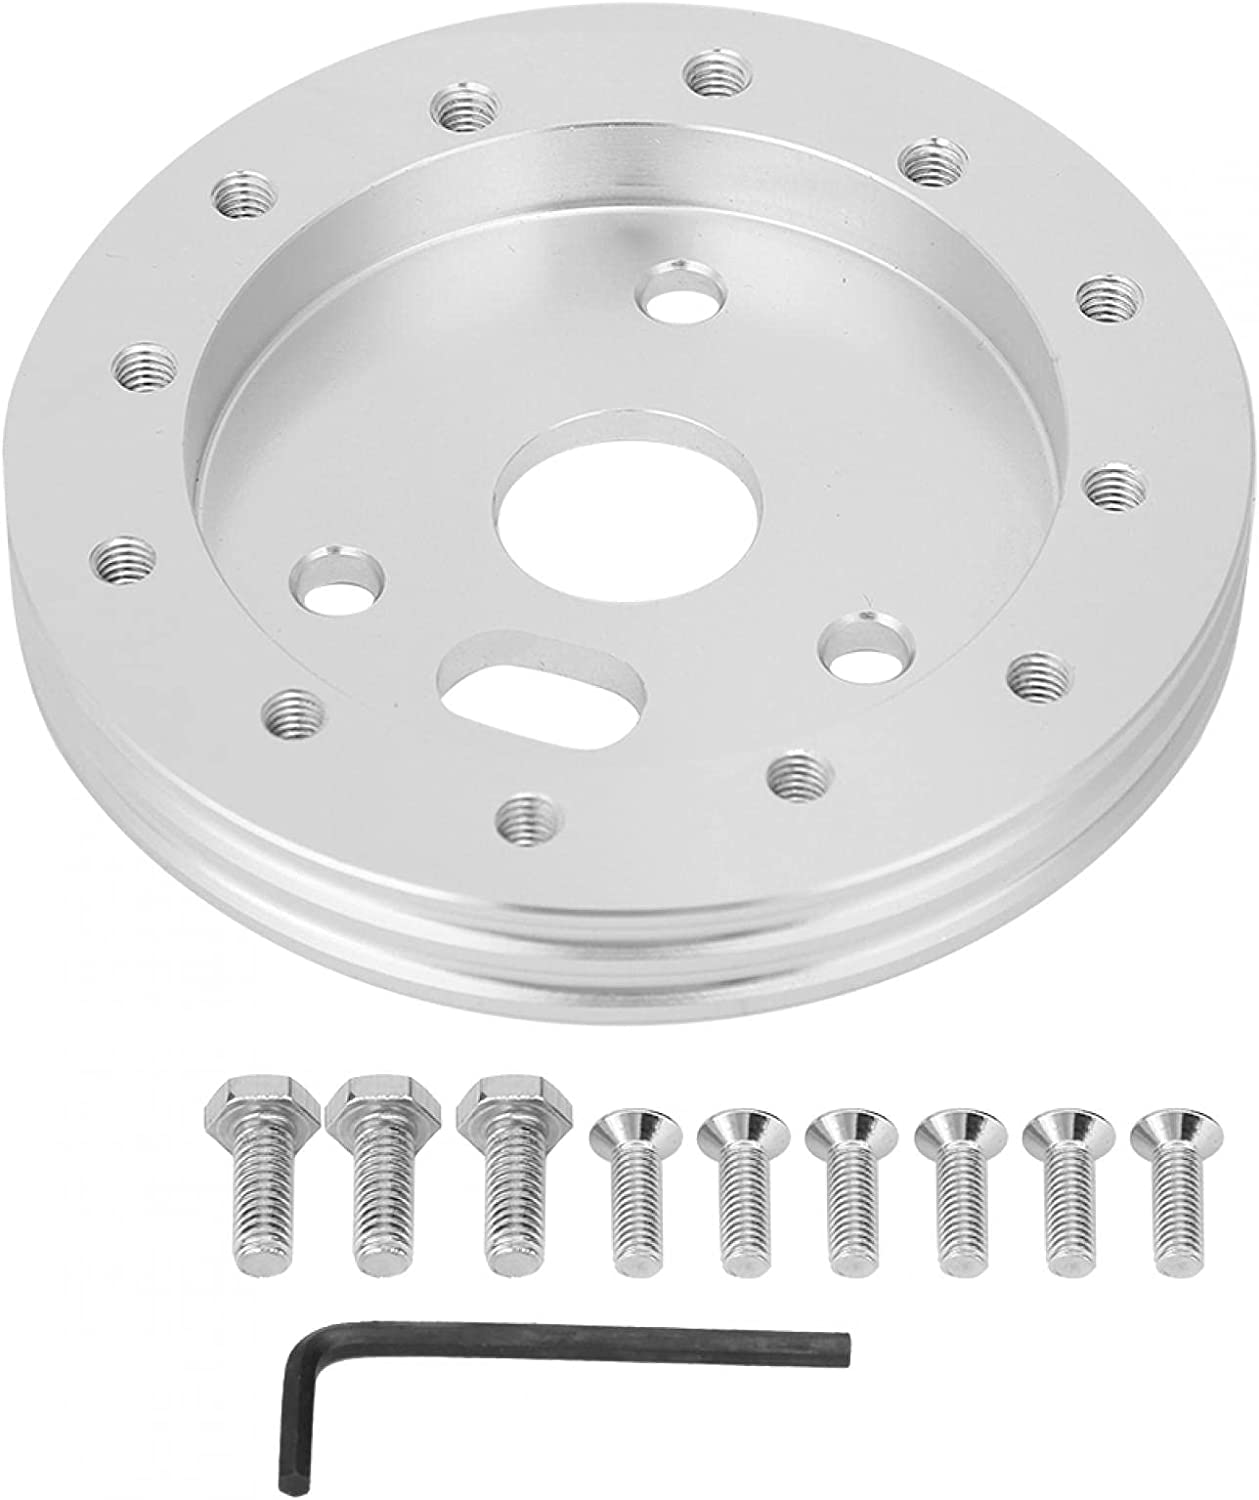 Selling and selling Raguso Steering Wheel Pad Replacement Silver Car Industry No. 1 for